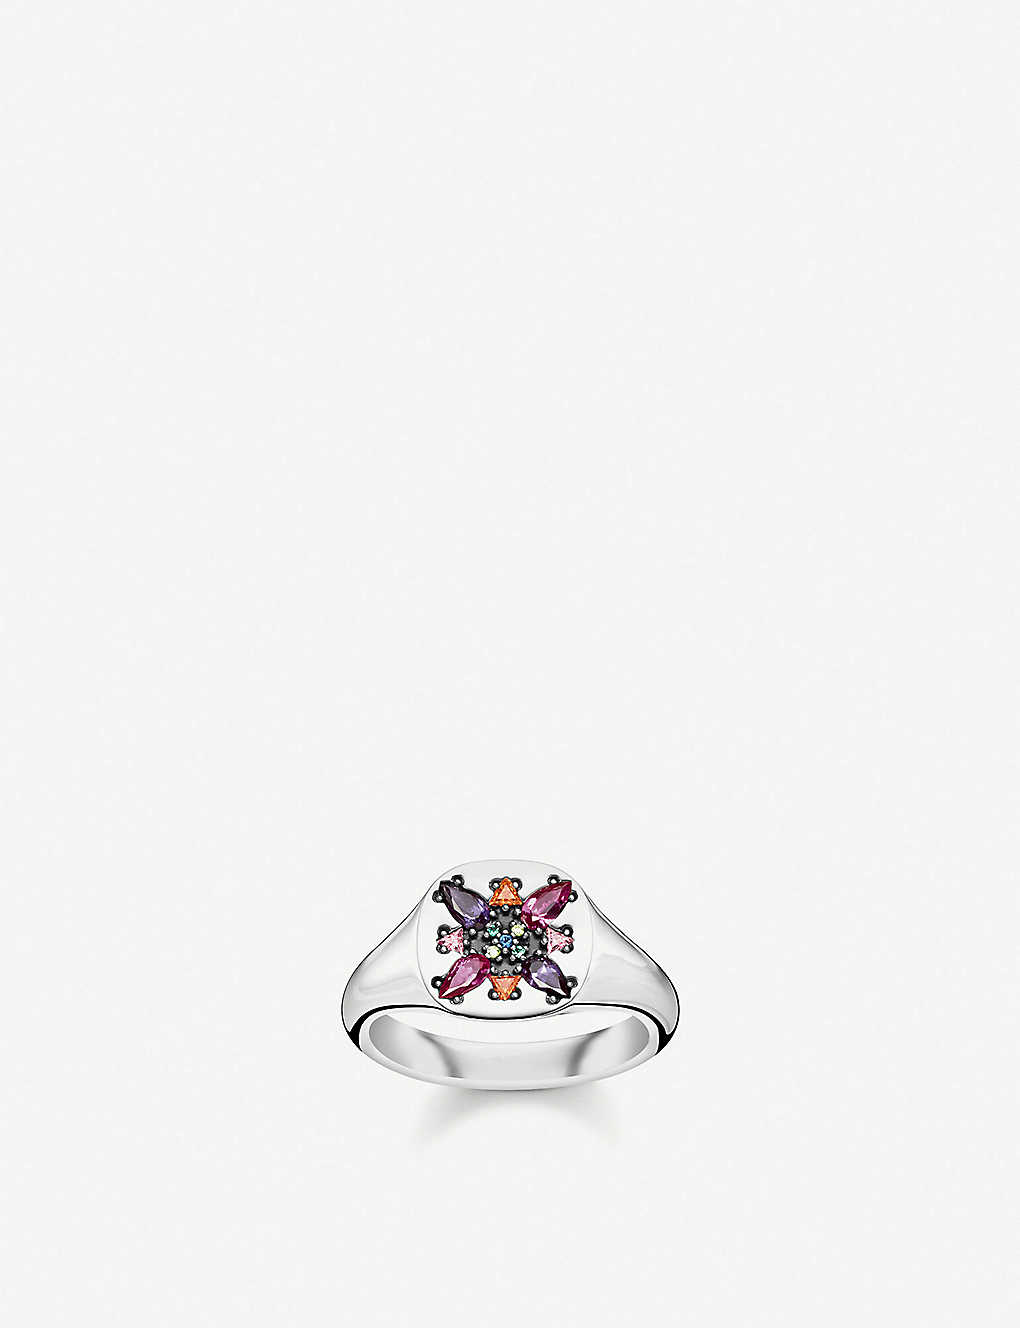 THOMAS SABO: Colourful Stones sterling silver and zirconia signet ring